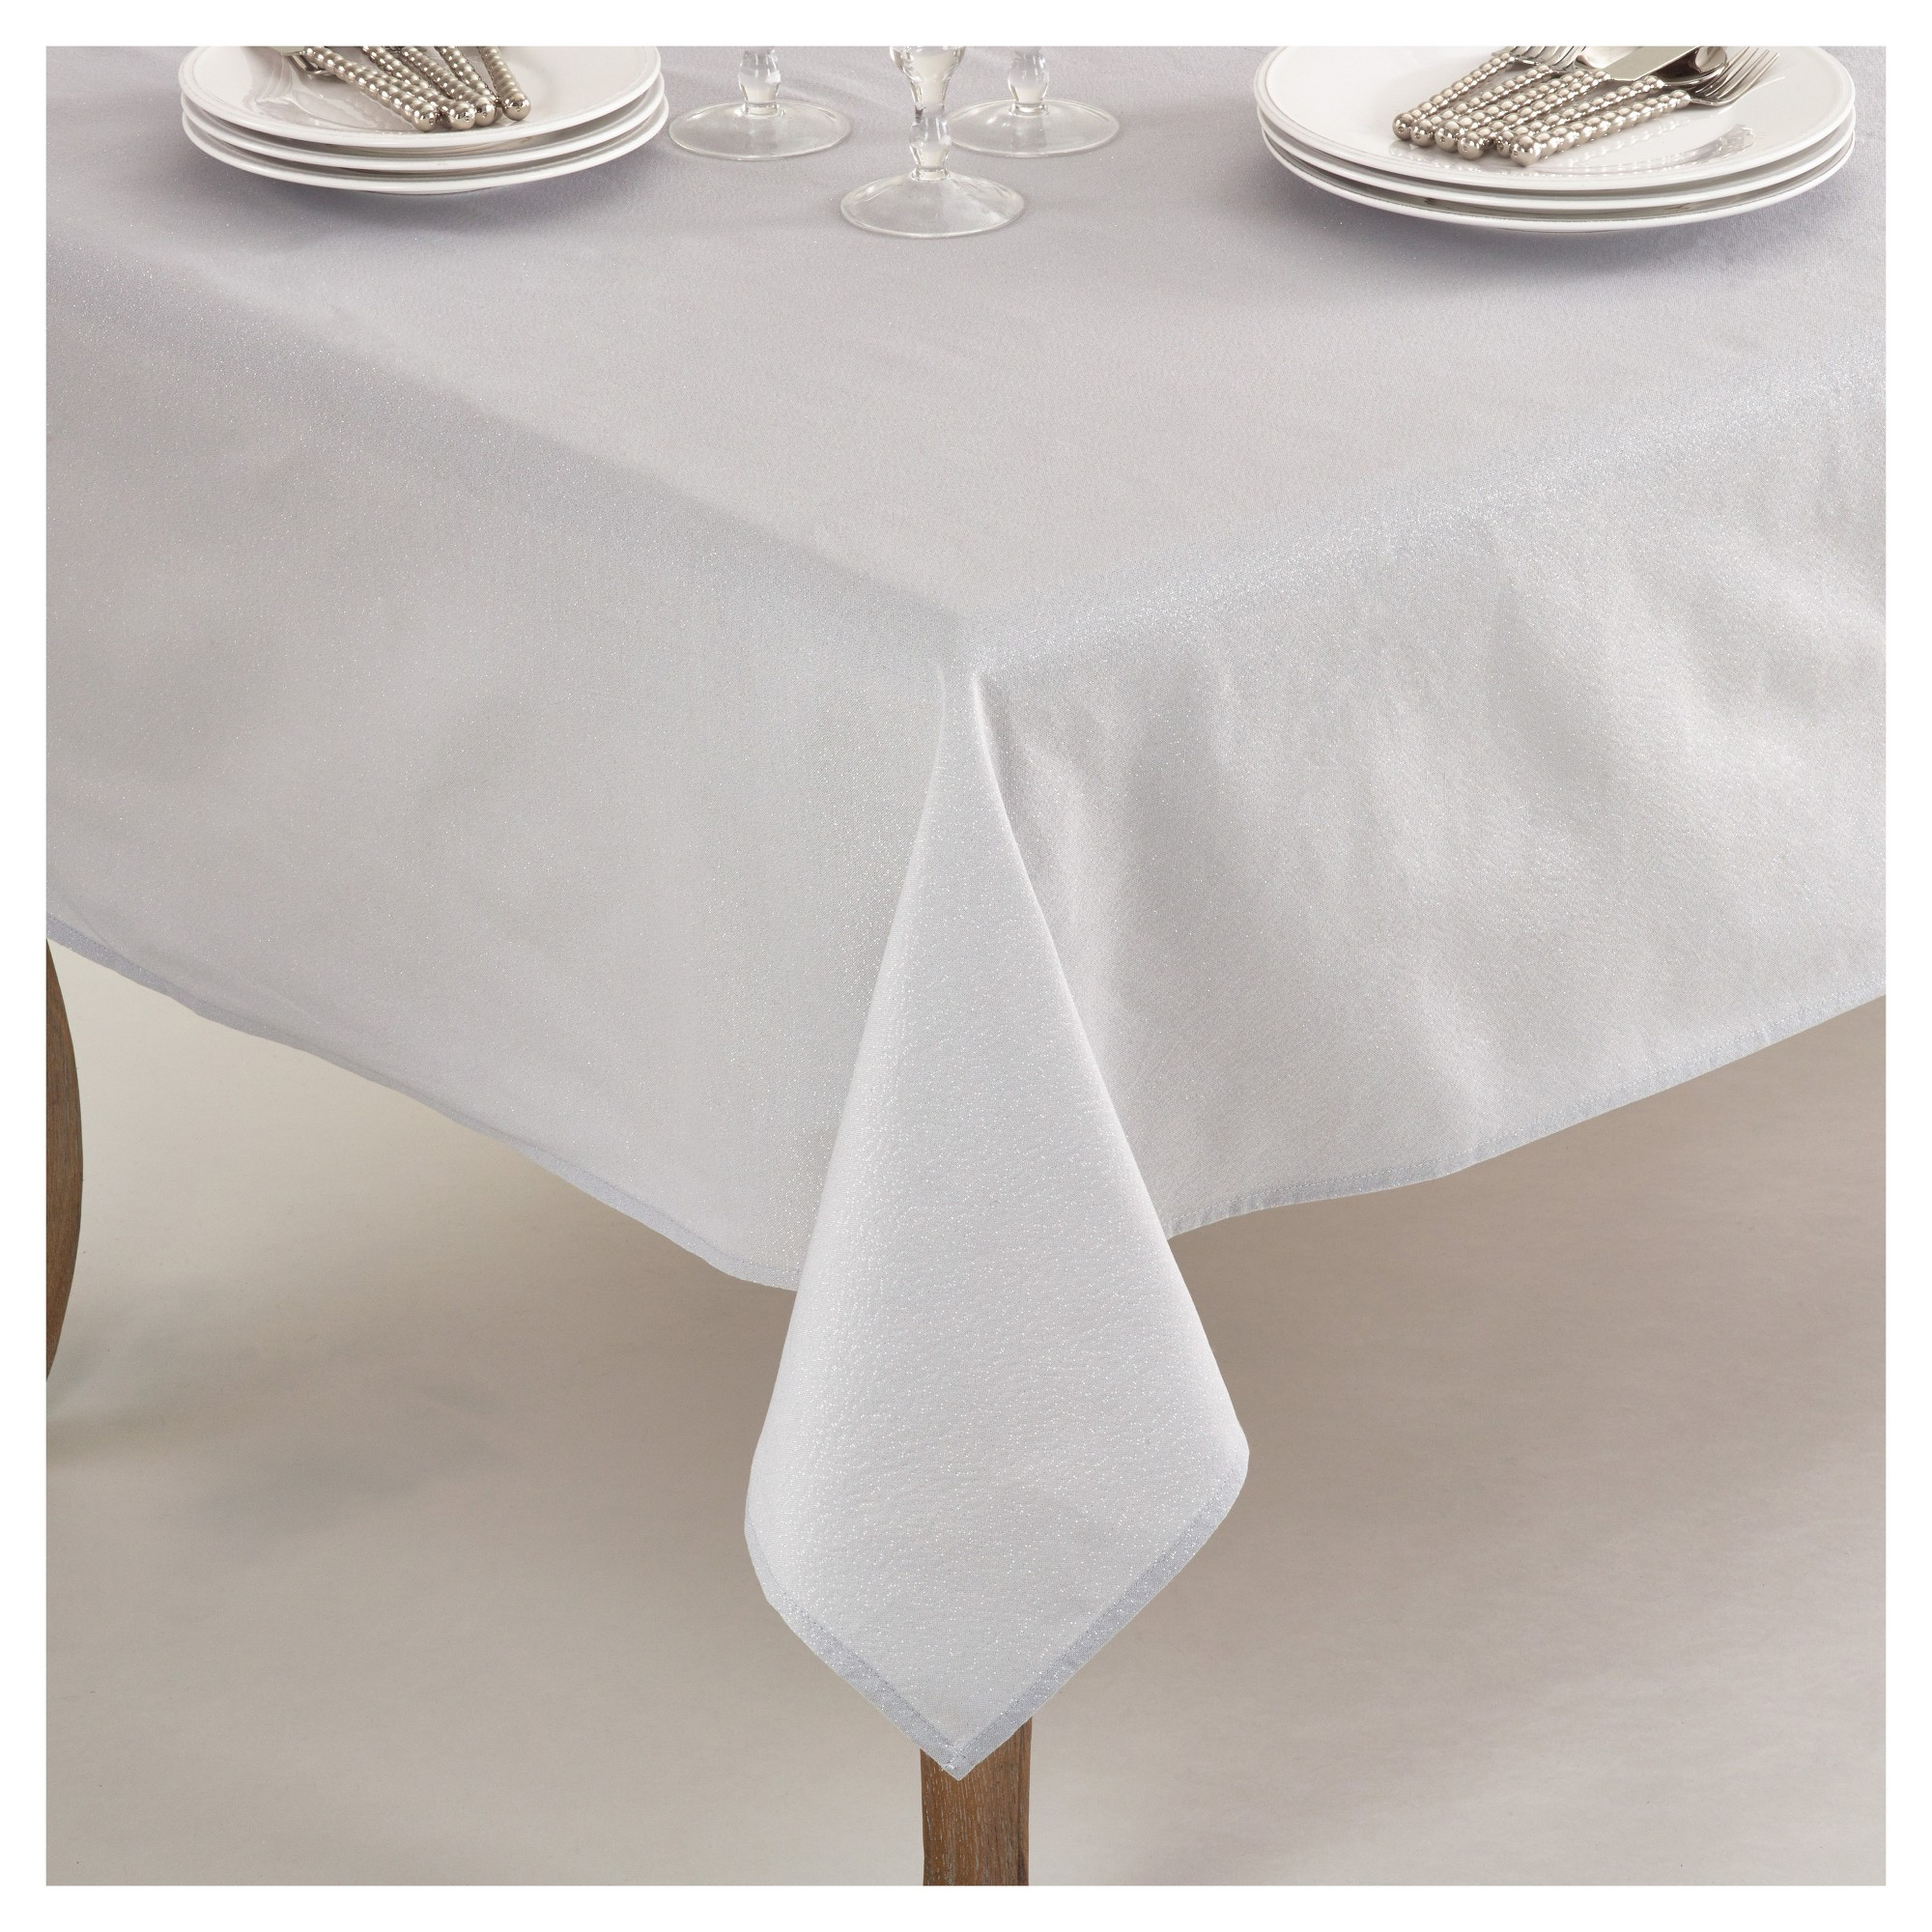 Silver Elegant Shimmer Classic Tablecloth (70) - Saro Lifestyle, Soft Silver